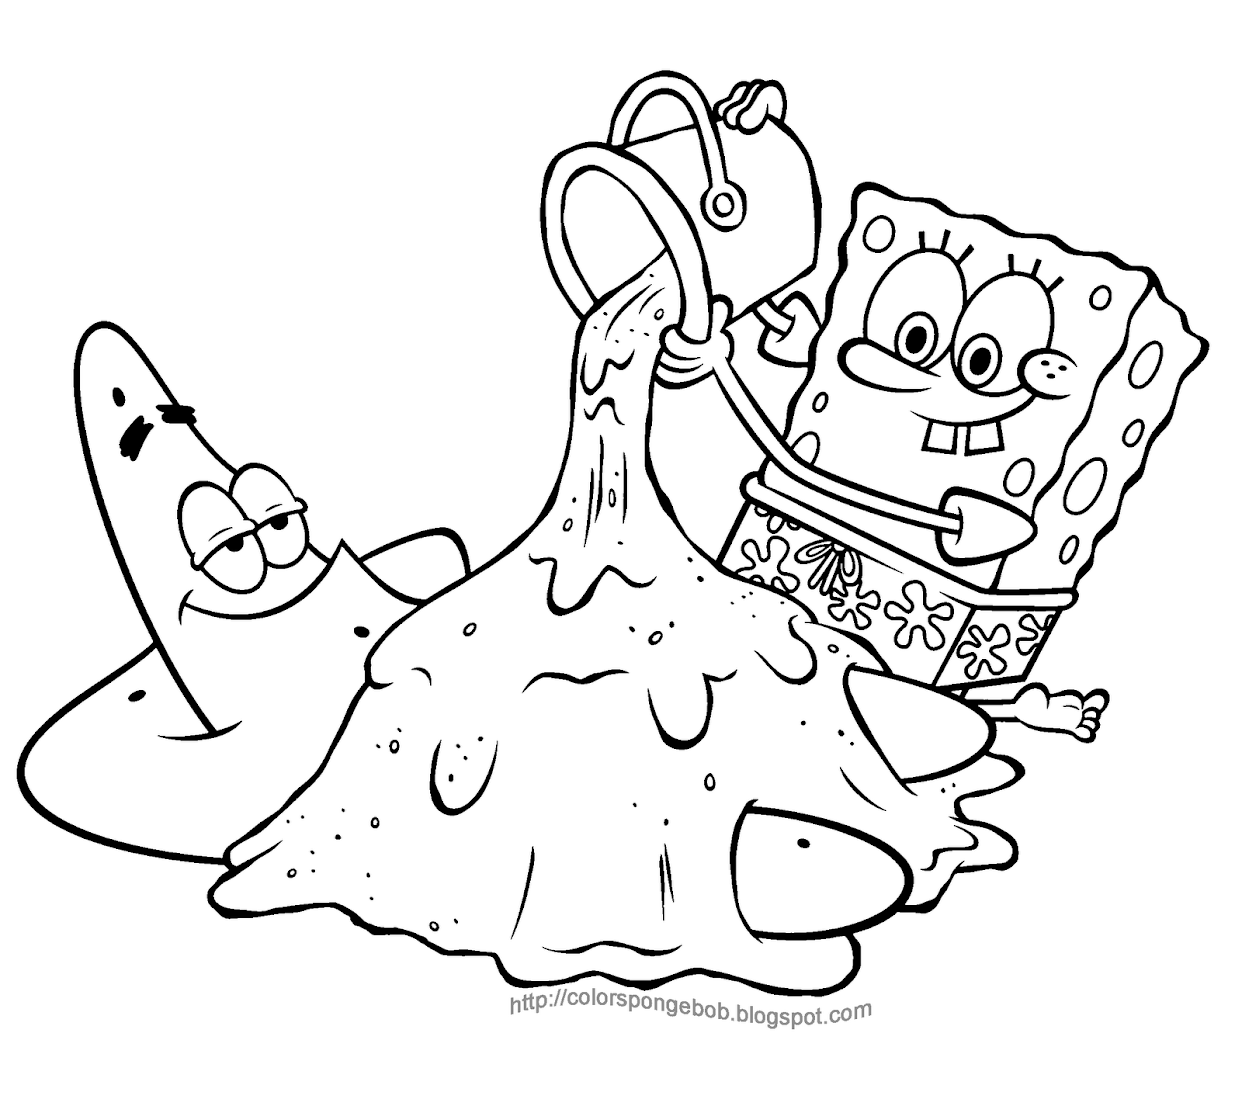 1242x1099 30 Gangster Spongebob Coloring Pages, Gangsta Spongebob Coloring